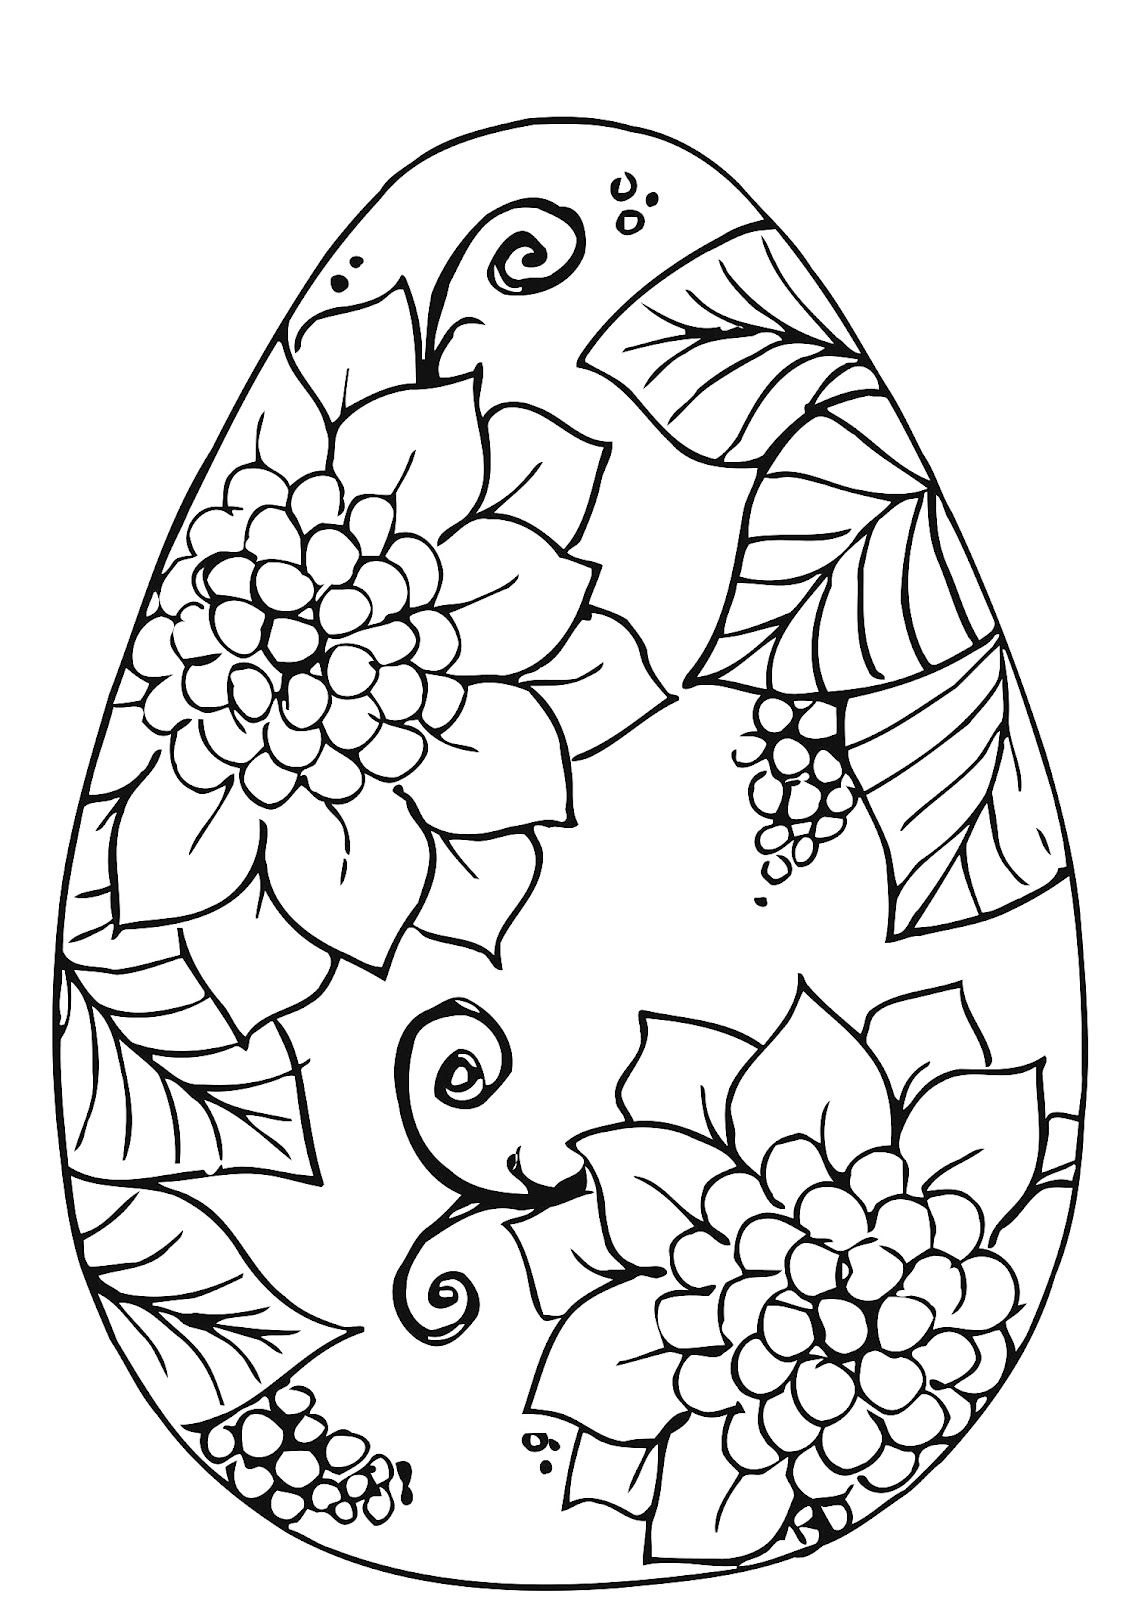 bddesigns free coloring page easter kleurplaat pasen - Easter Egg Coloring Pages Crayola